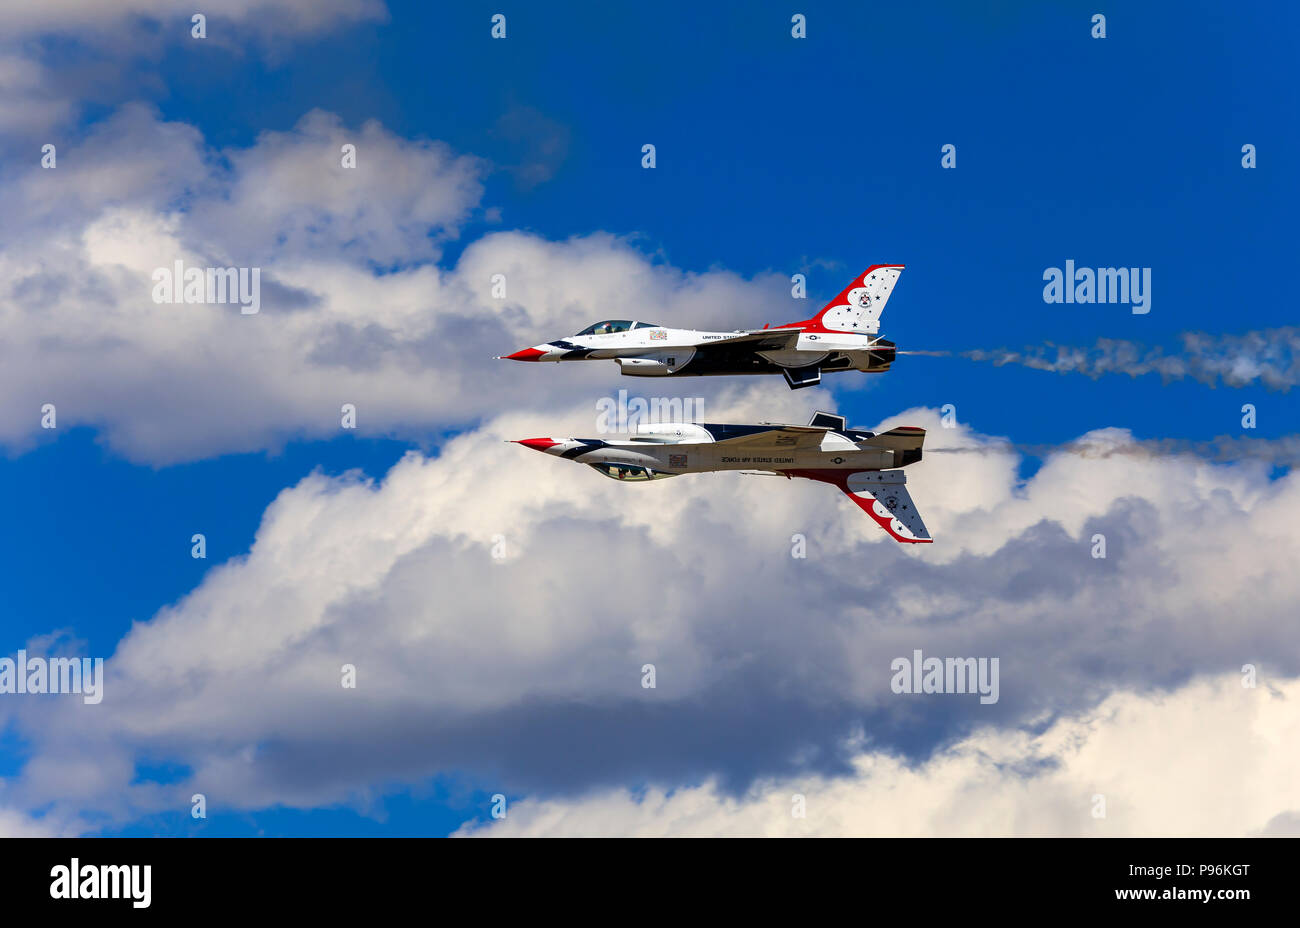 The No. 5 and No. 6 aircraft of the U. S. Air Force Air Demonstration Squadron (Thunderbirds) perform the 'Reflection Pass' maneuver at Hill AFB Utah. - Stock Image